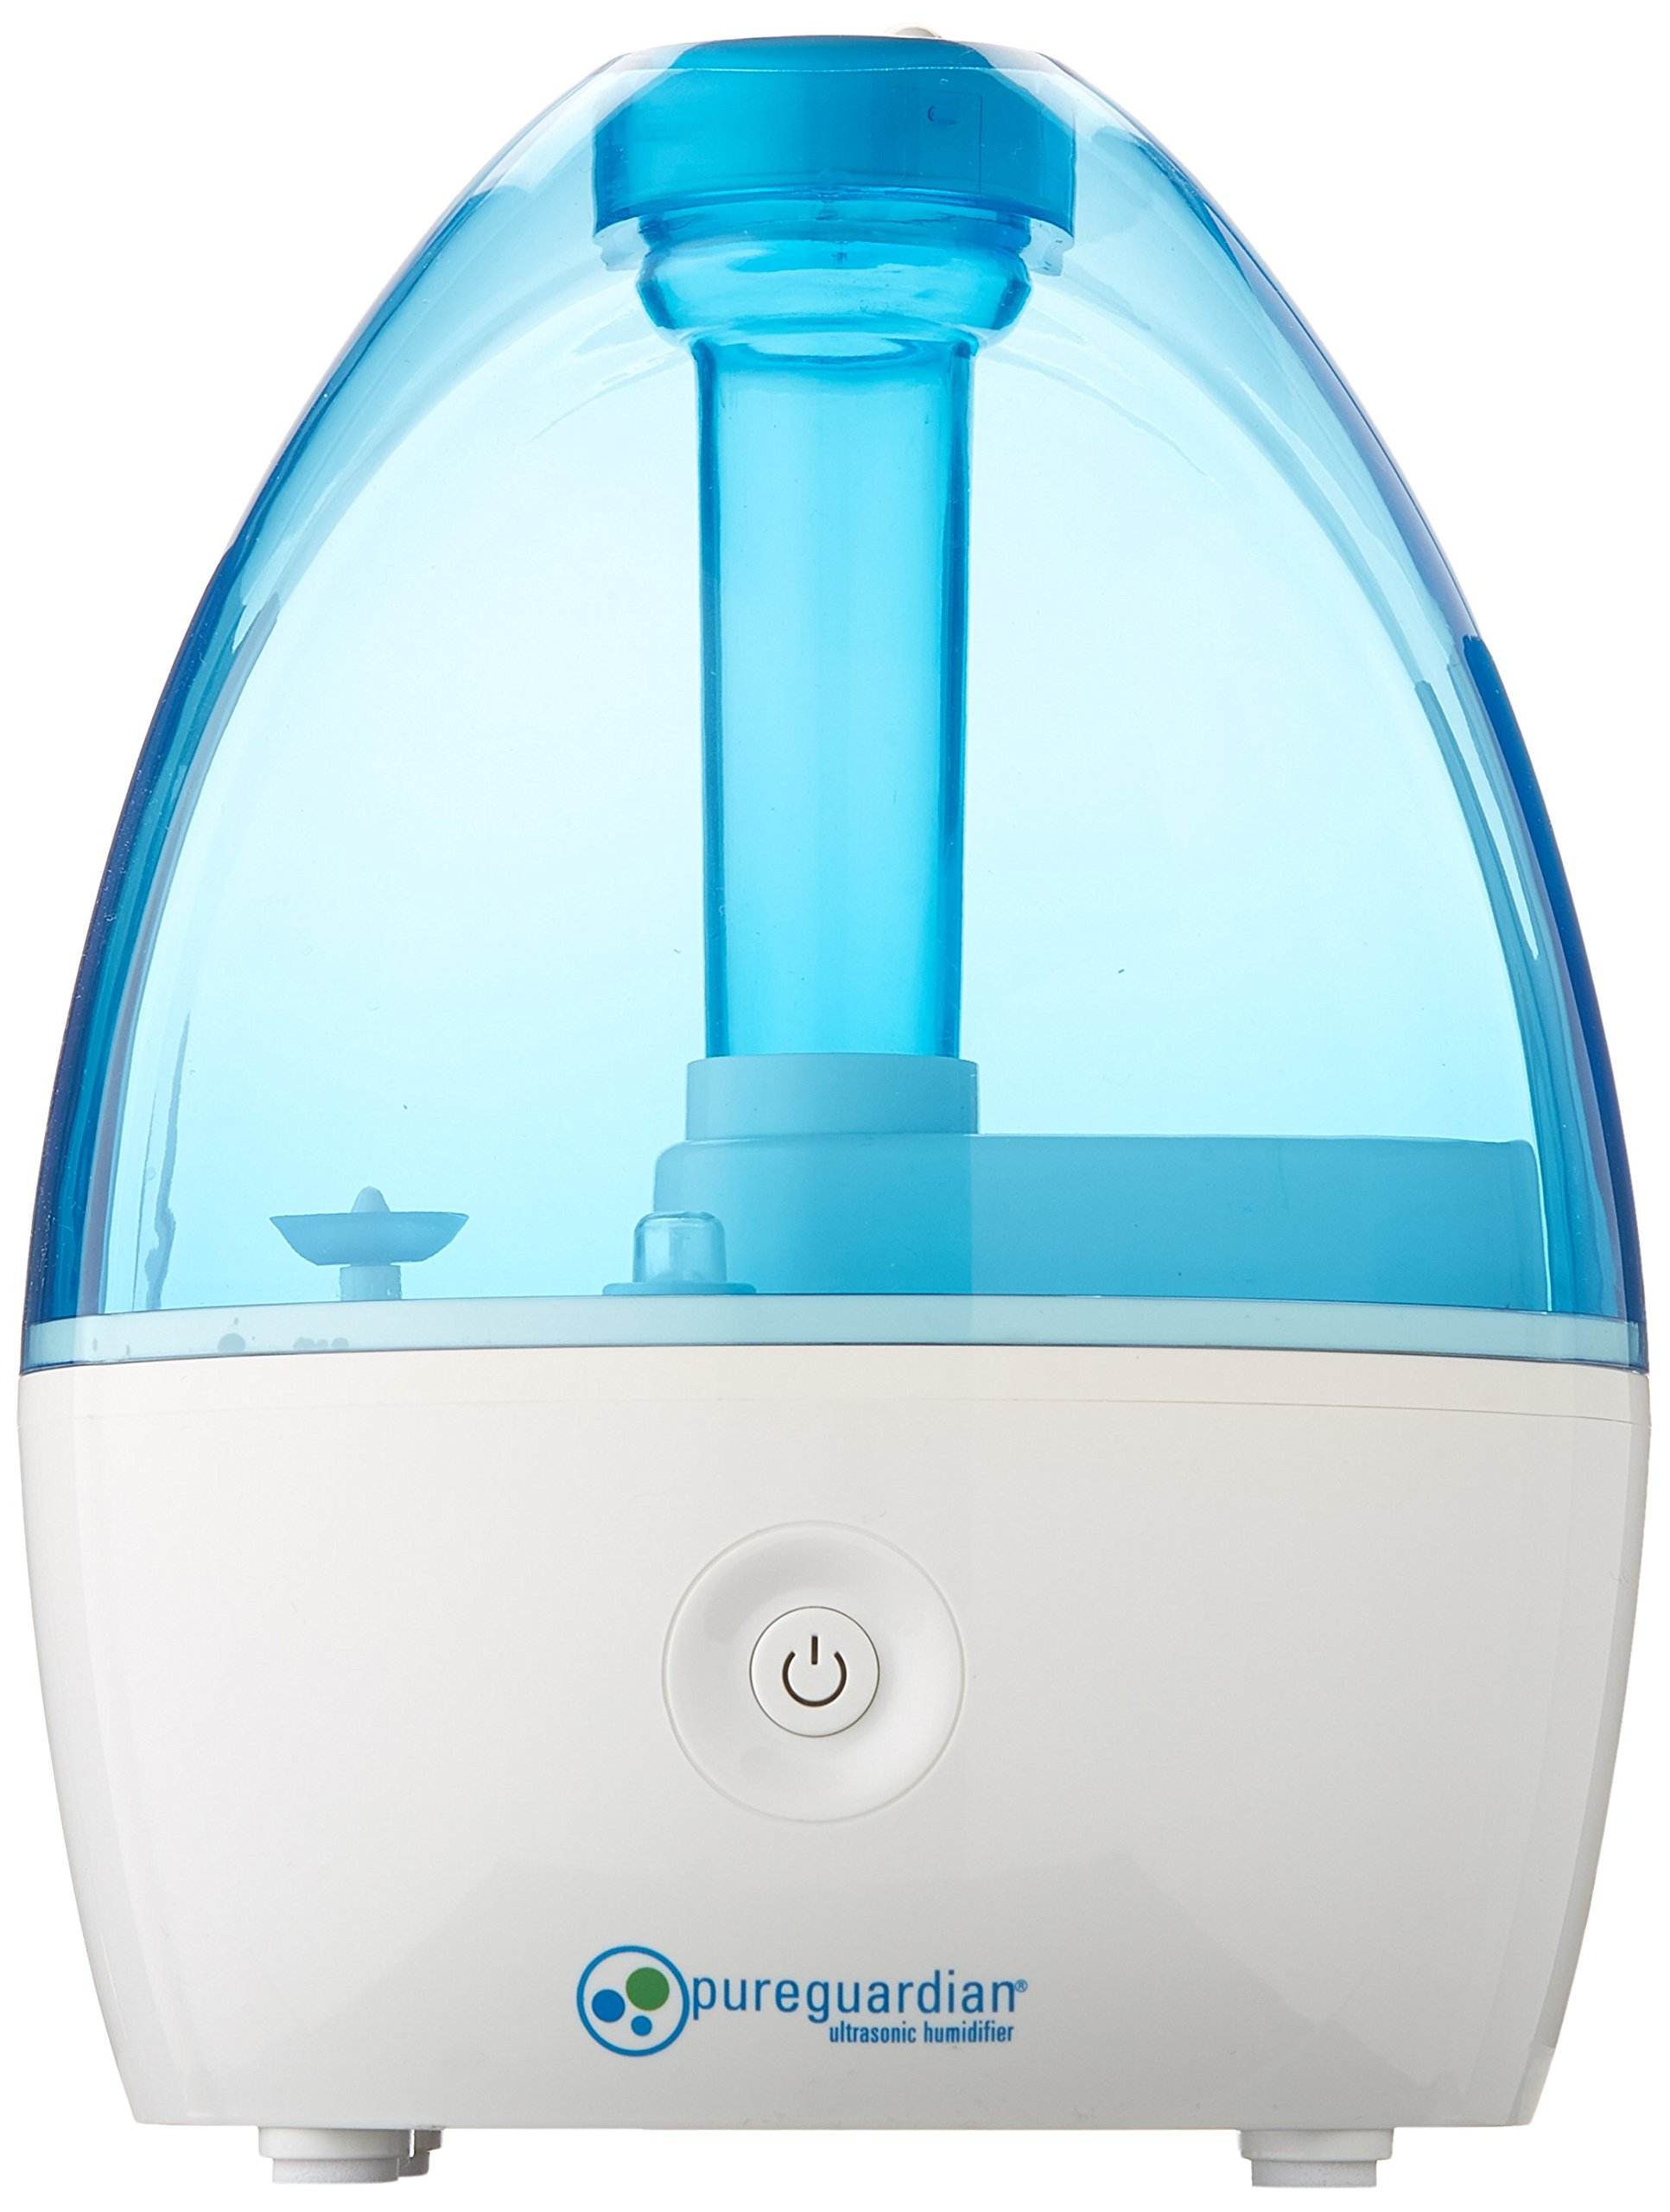 how to clean pureguardian humidifier